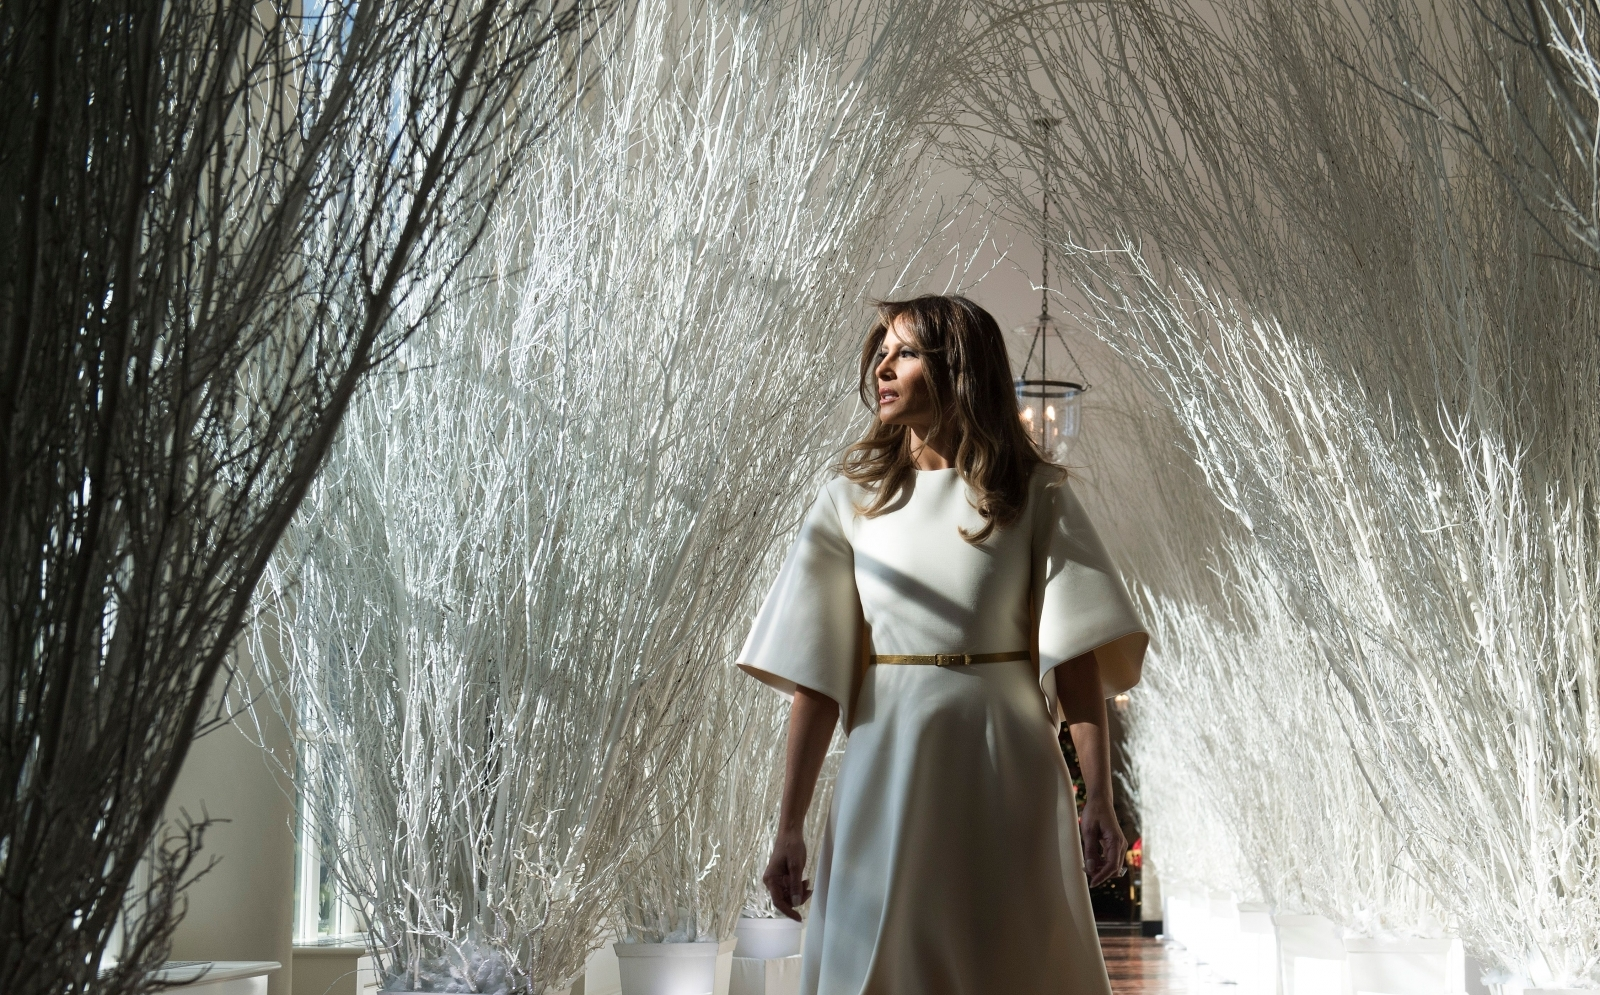 Melania Trump unveils White House Christmas decorations to mixed reviews